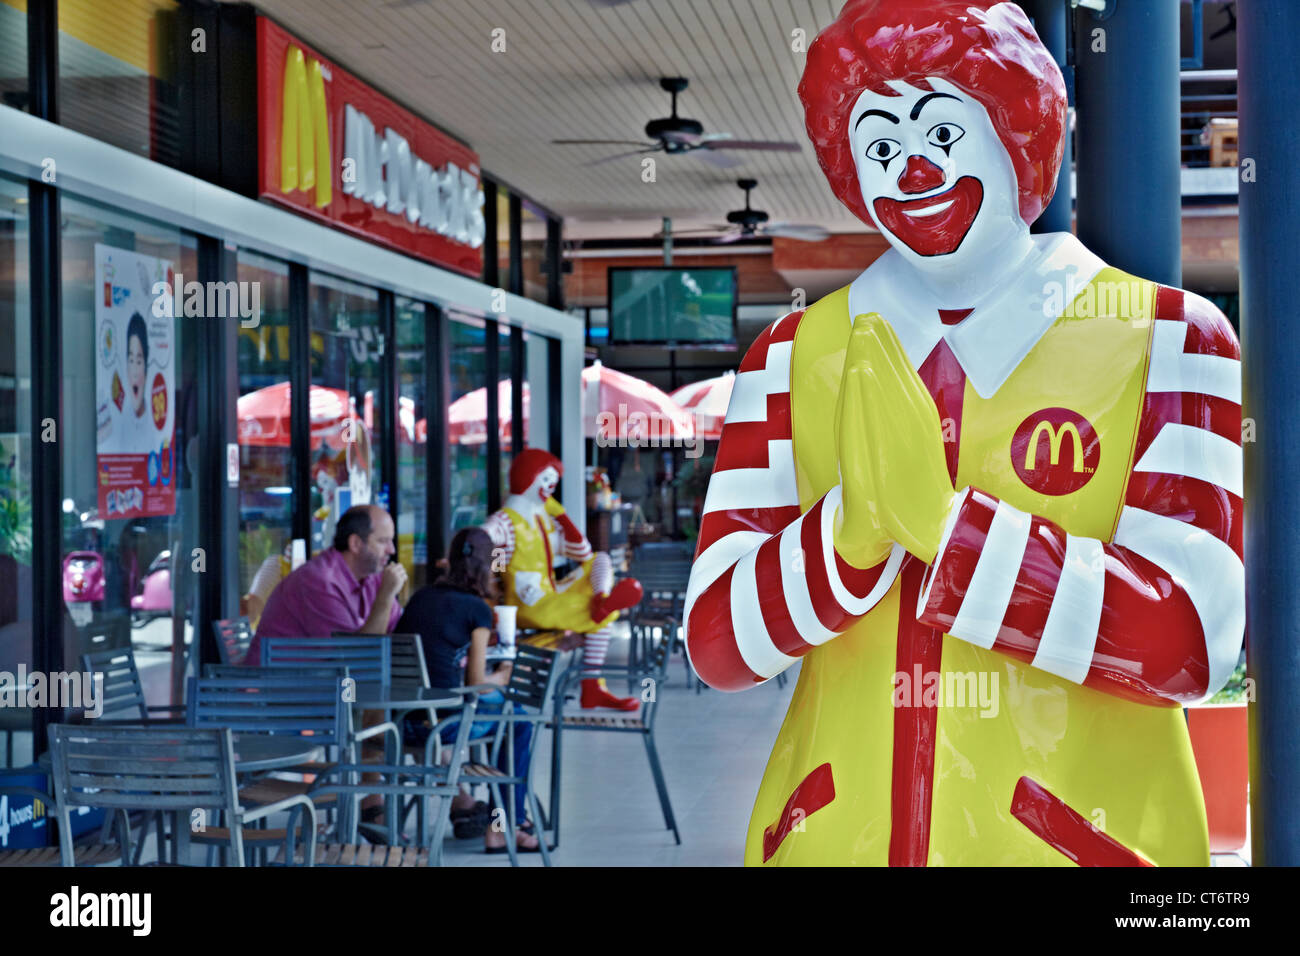 Mcdonalds restaurant in thailand with ronald mcdonald greeting mcdonalds restaurant in thailand with ronald mcdonald greeting customers with the traditional thai wai thailand s e asia kristyandbryce Choice Image